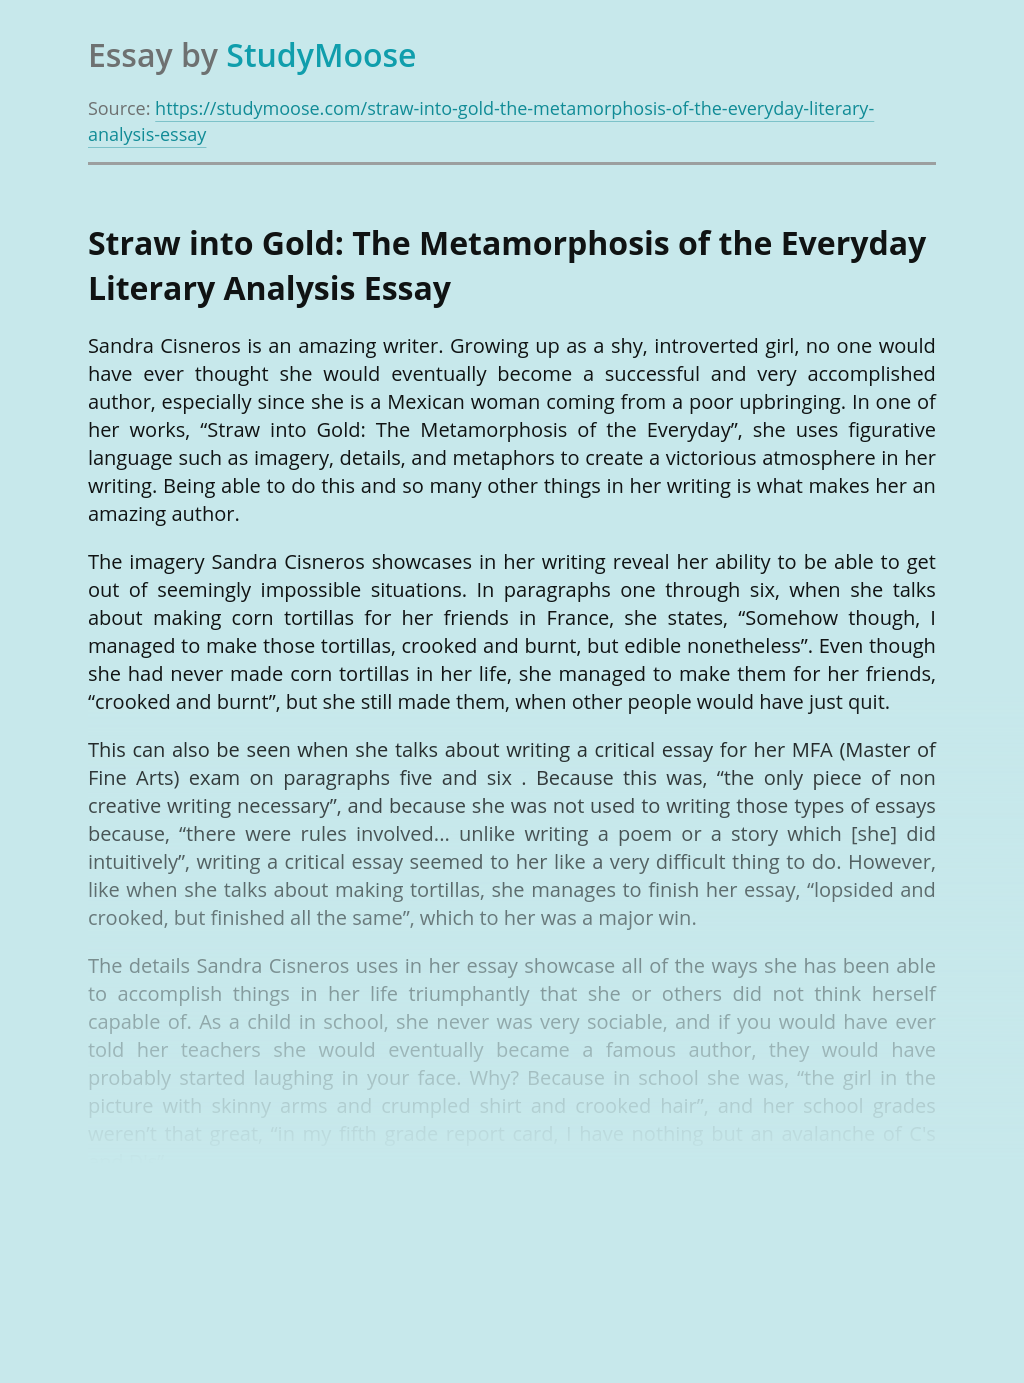 Straw into Gold: The Metamorphosis of the Everyday Literary Analysis